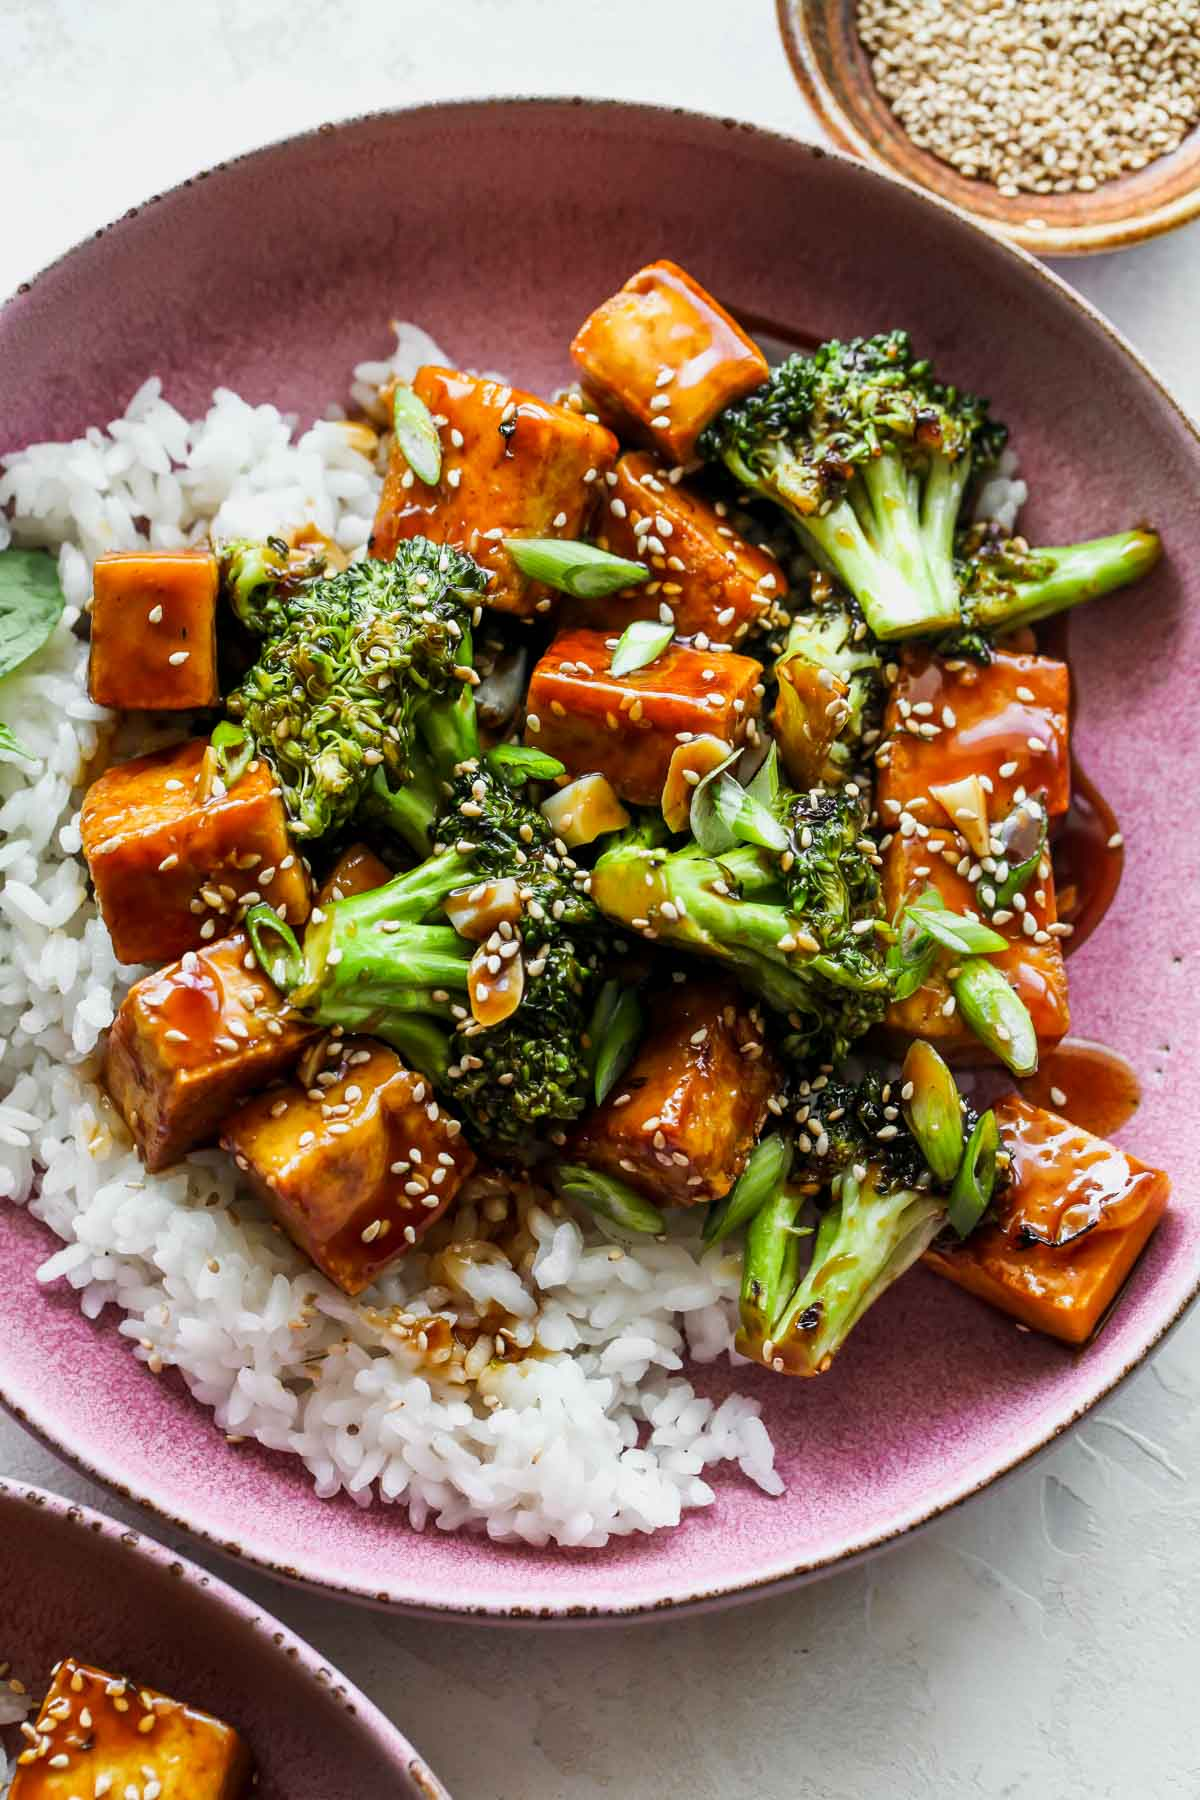 Tofu and veggies served over rice and topped with scallions and sesame seeds